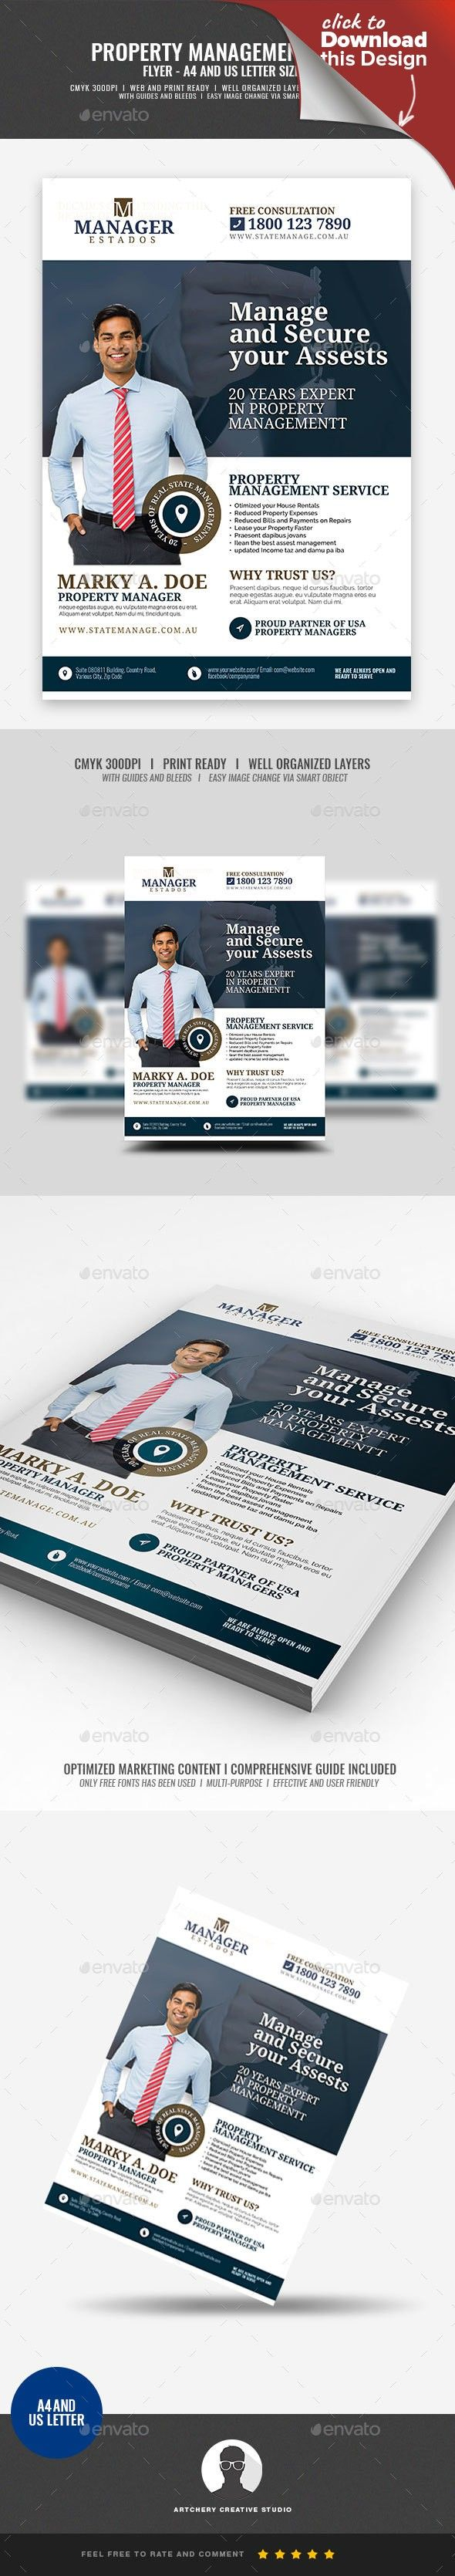 Property Management And Real Estate Flyer Property Management Real Estate Flyers Flyer